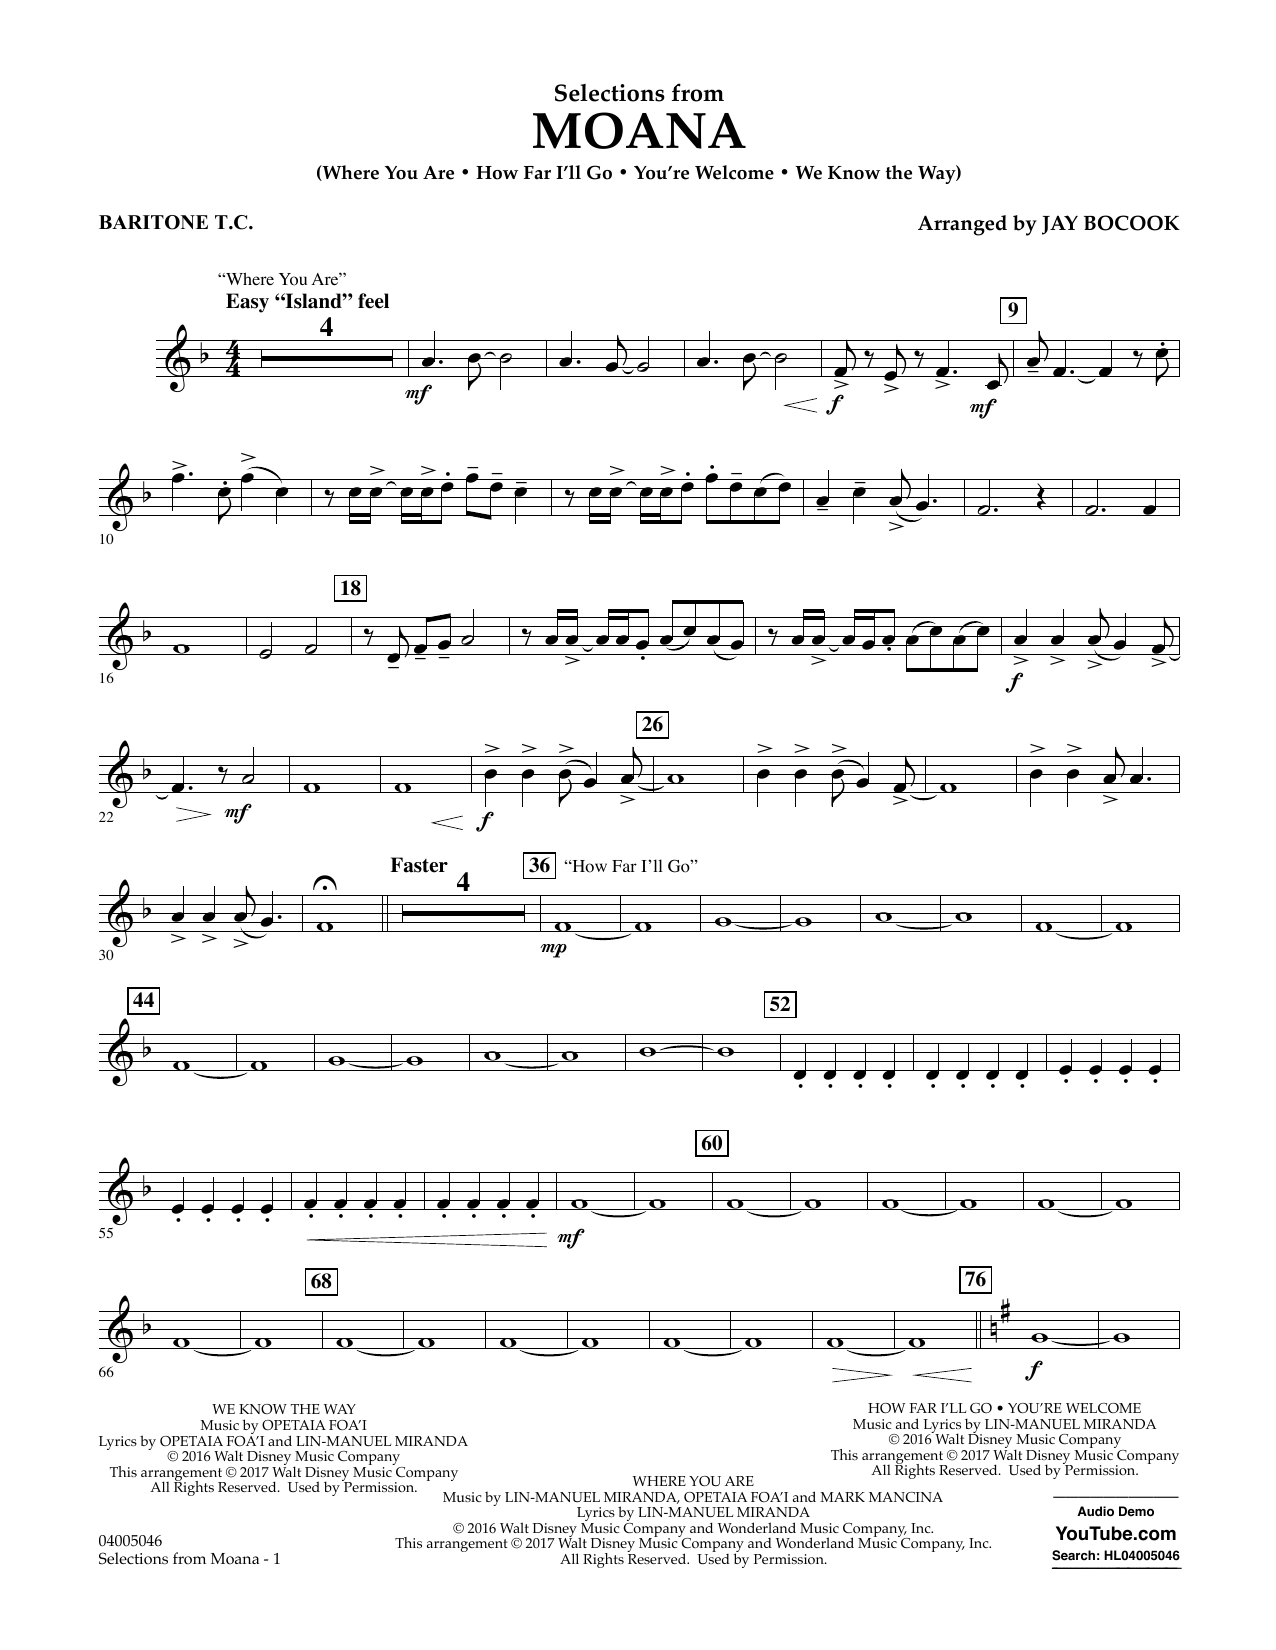 Selections from Moana - Baritone T.C. Sheet Music